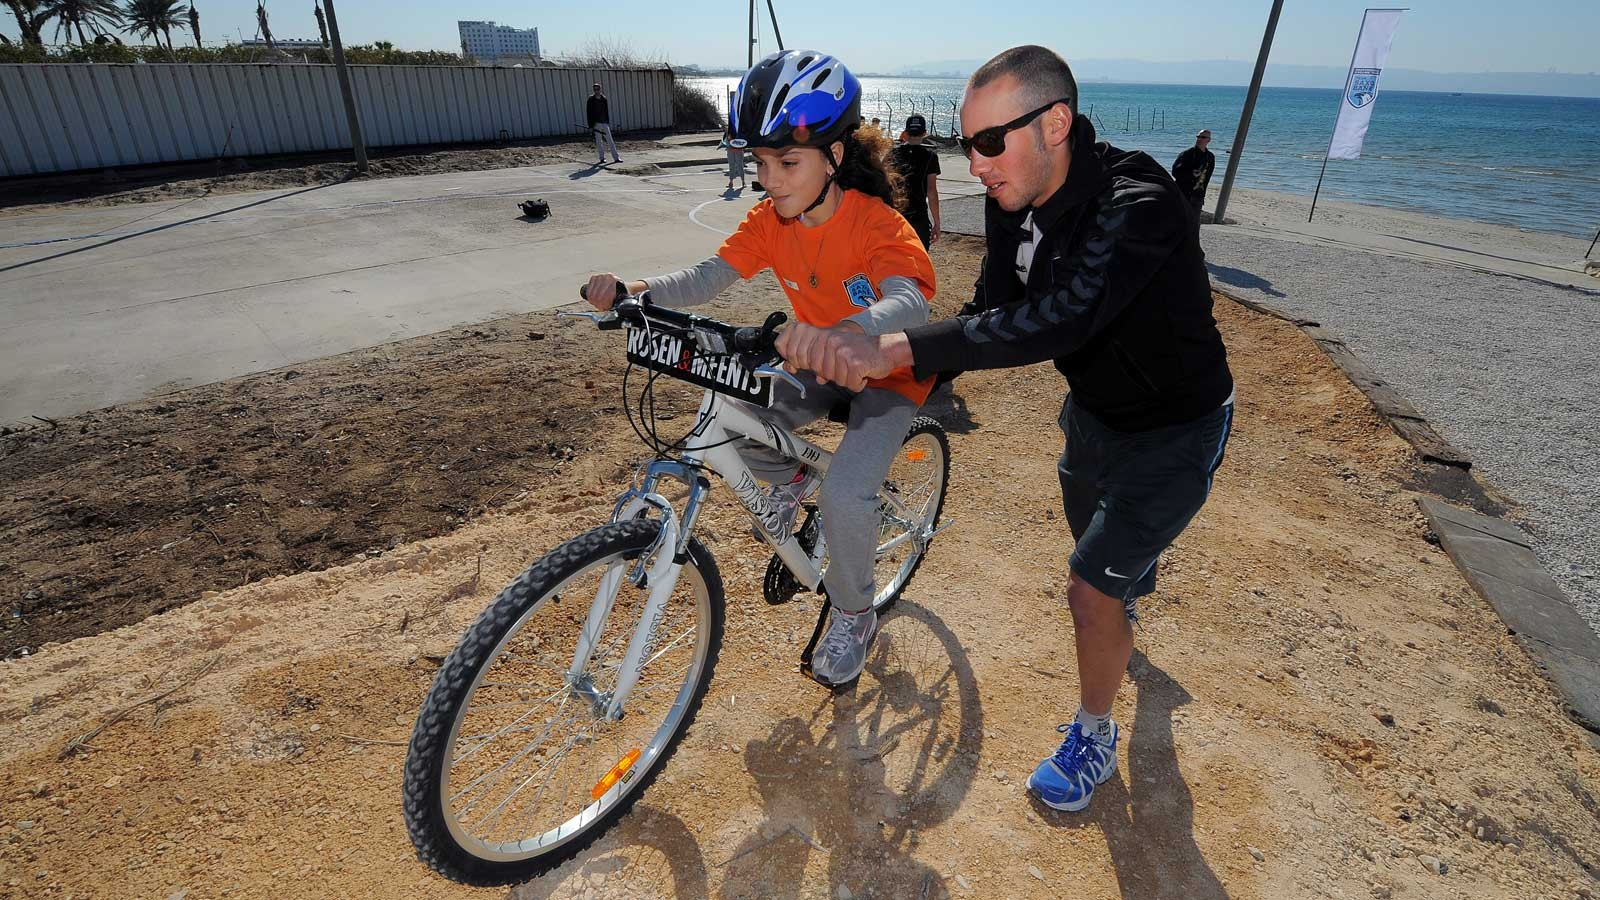 Your child may find sitting upright more comfortable when mountain biking